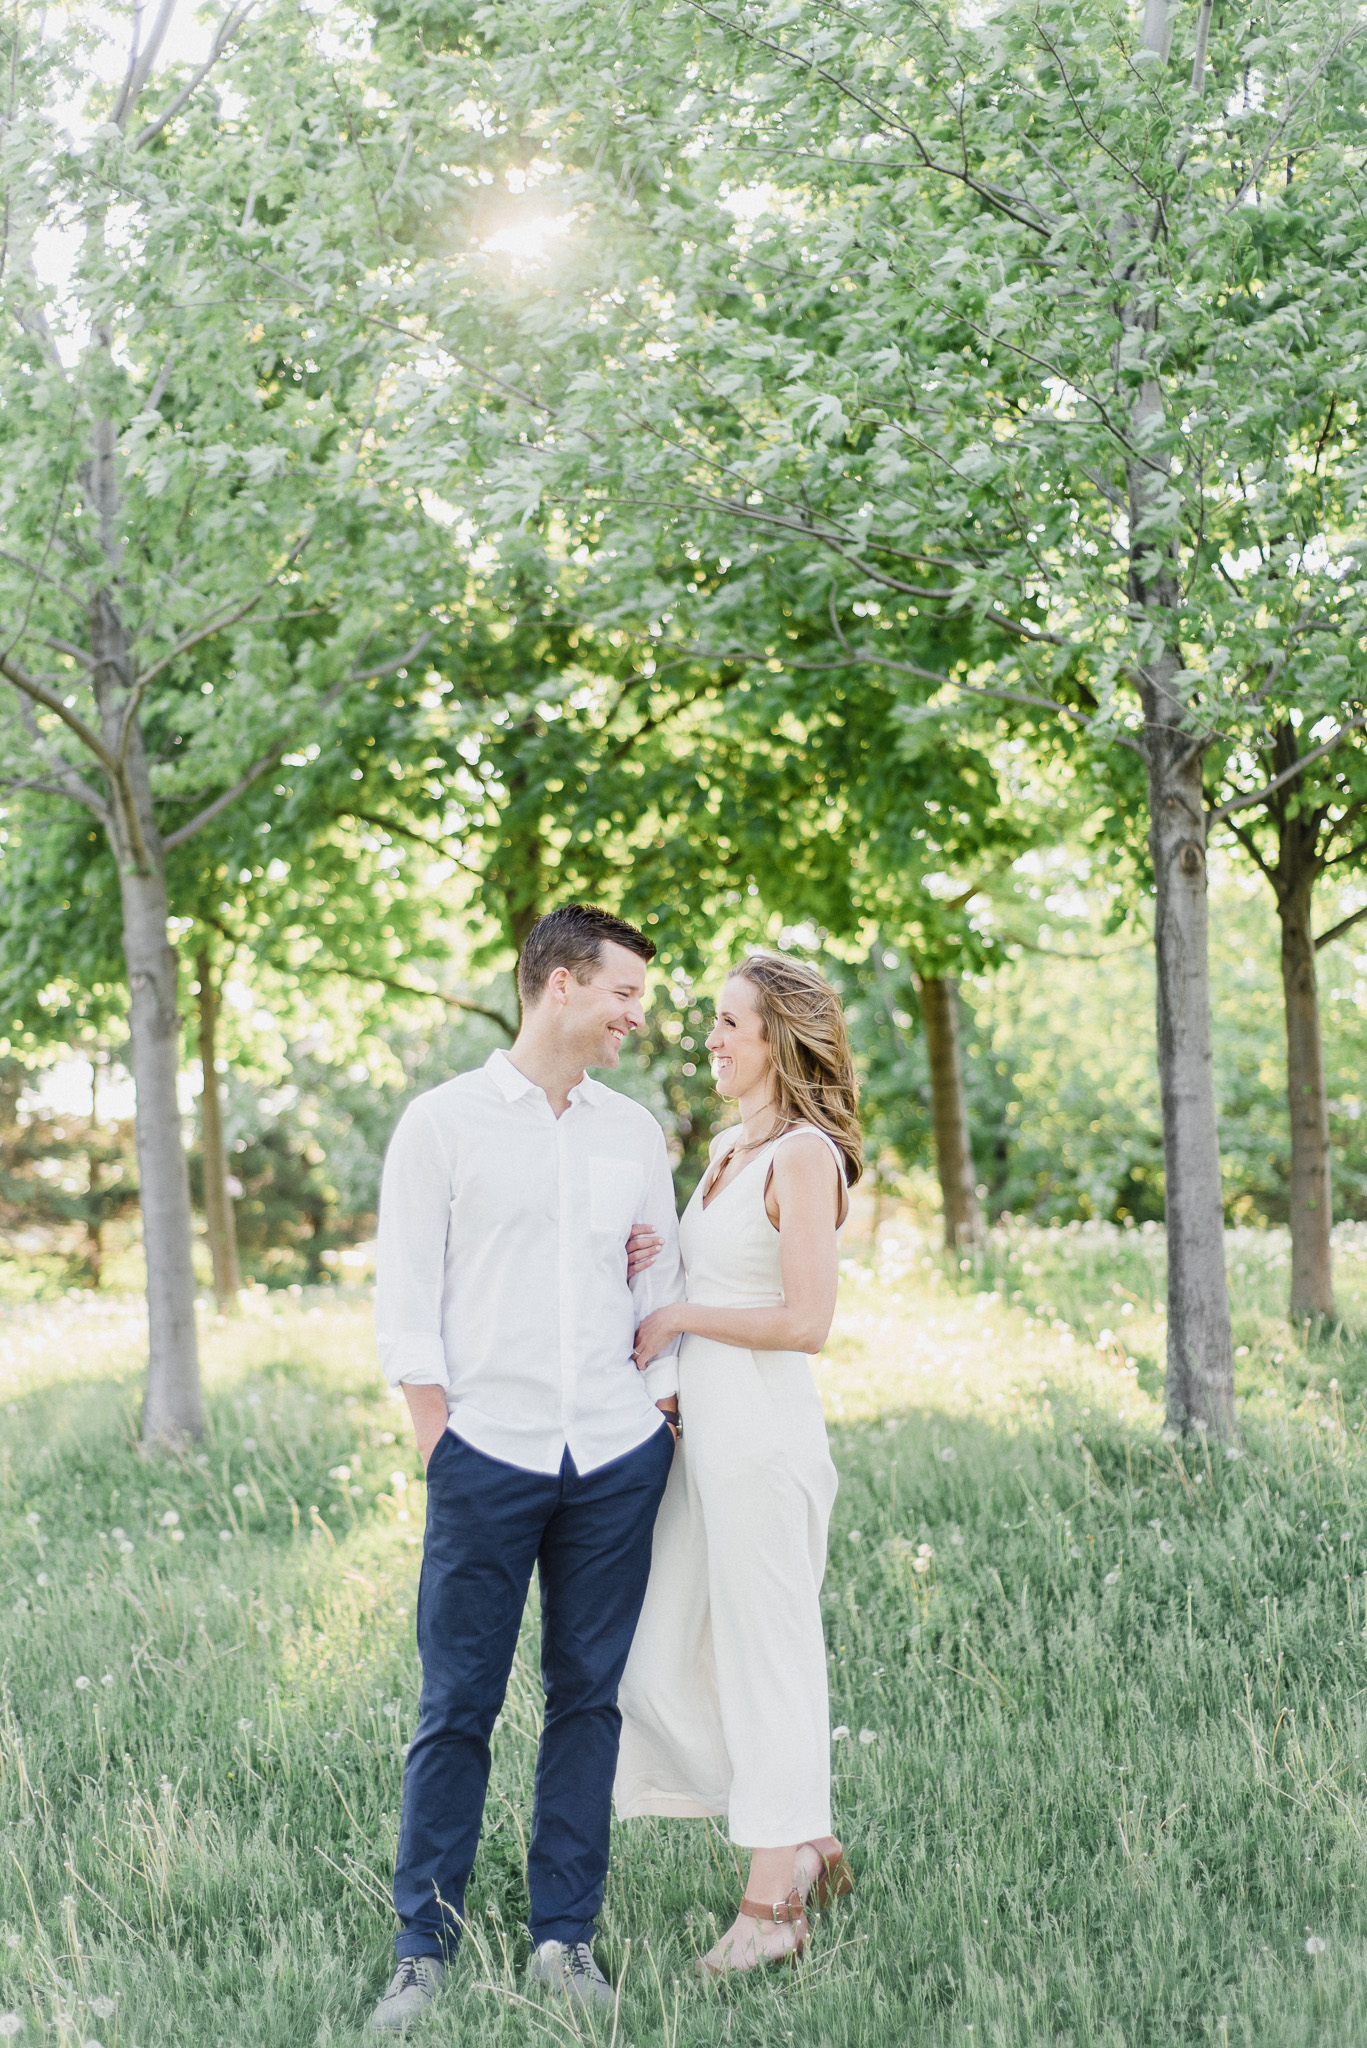 Gorgeous bride-to-be in elegant white jumpsuit, photographed by Jenn Kavanagh Photography.